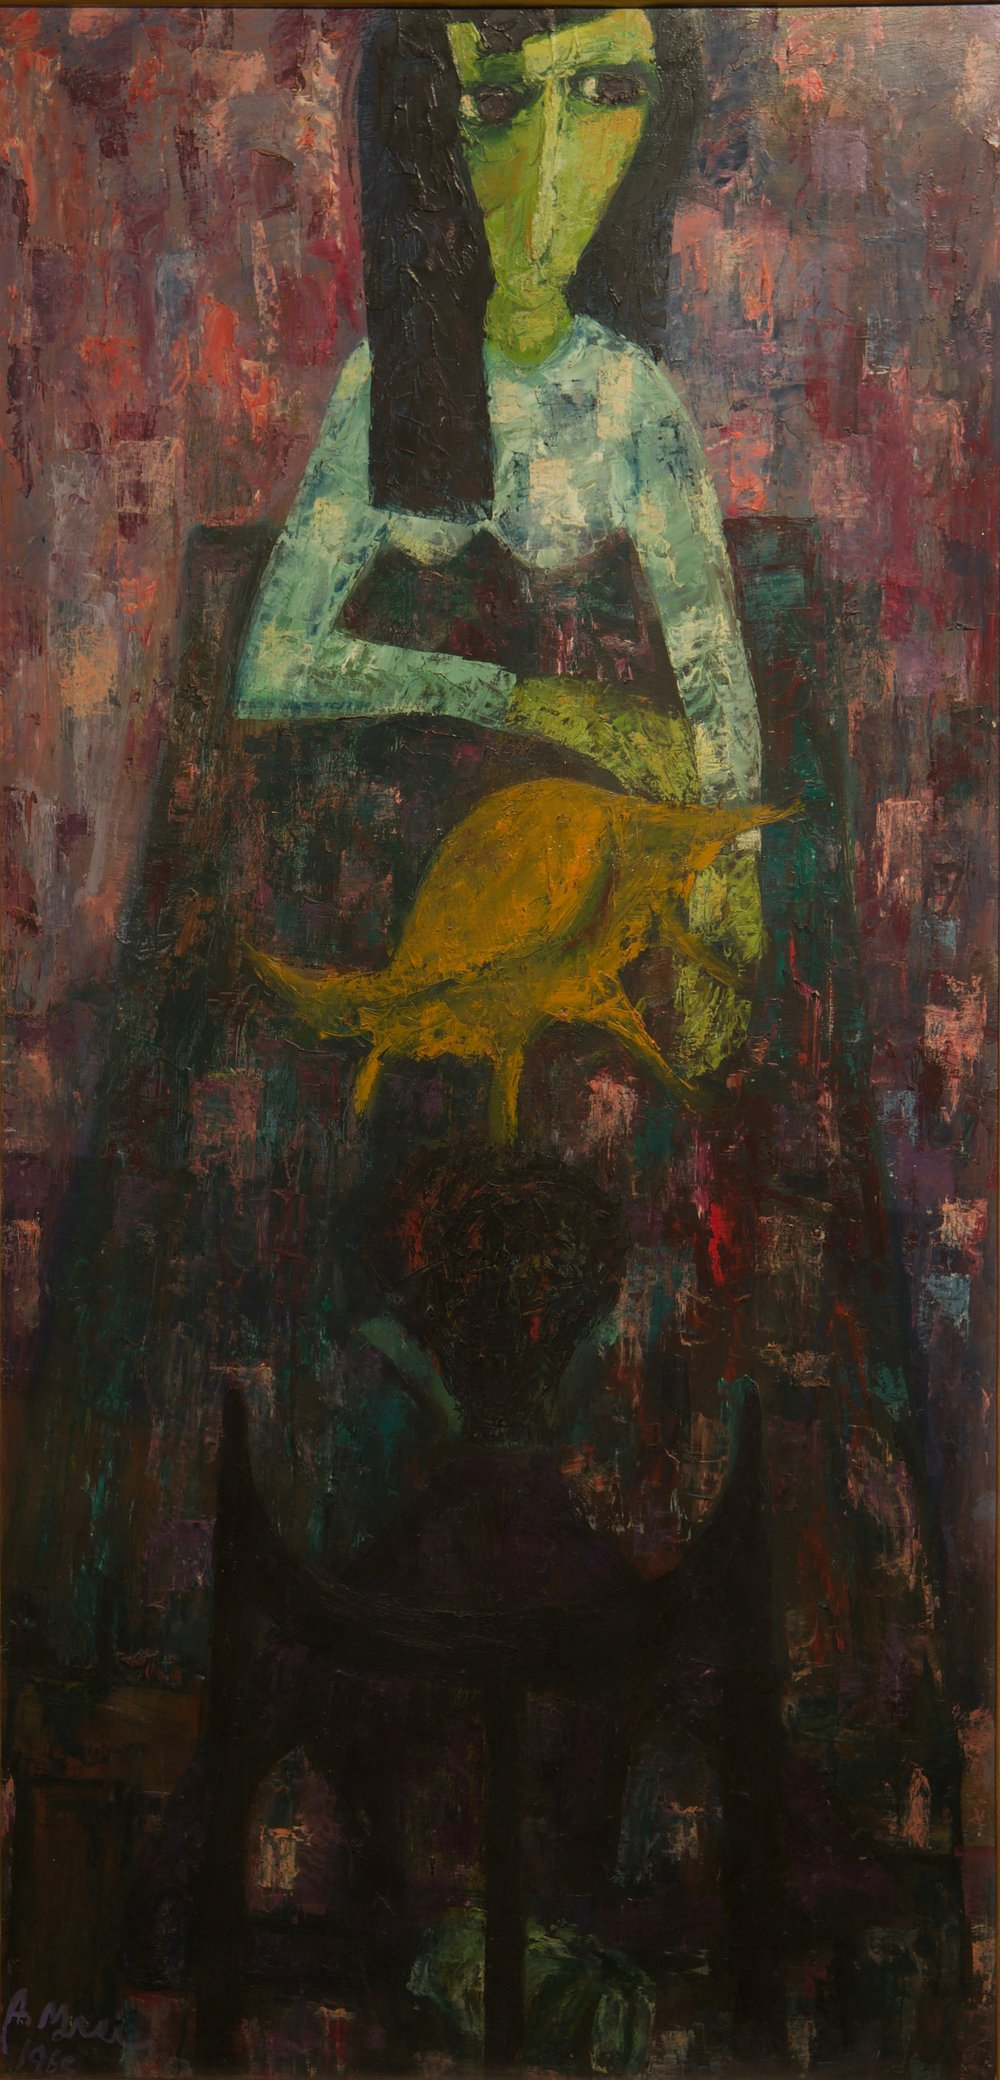 Ahmed-Morsi-Untitled-1965.jpg